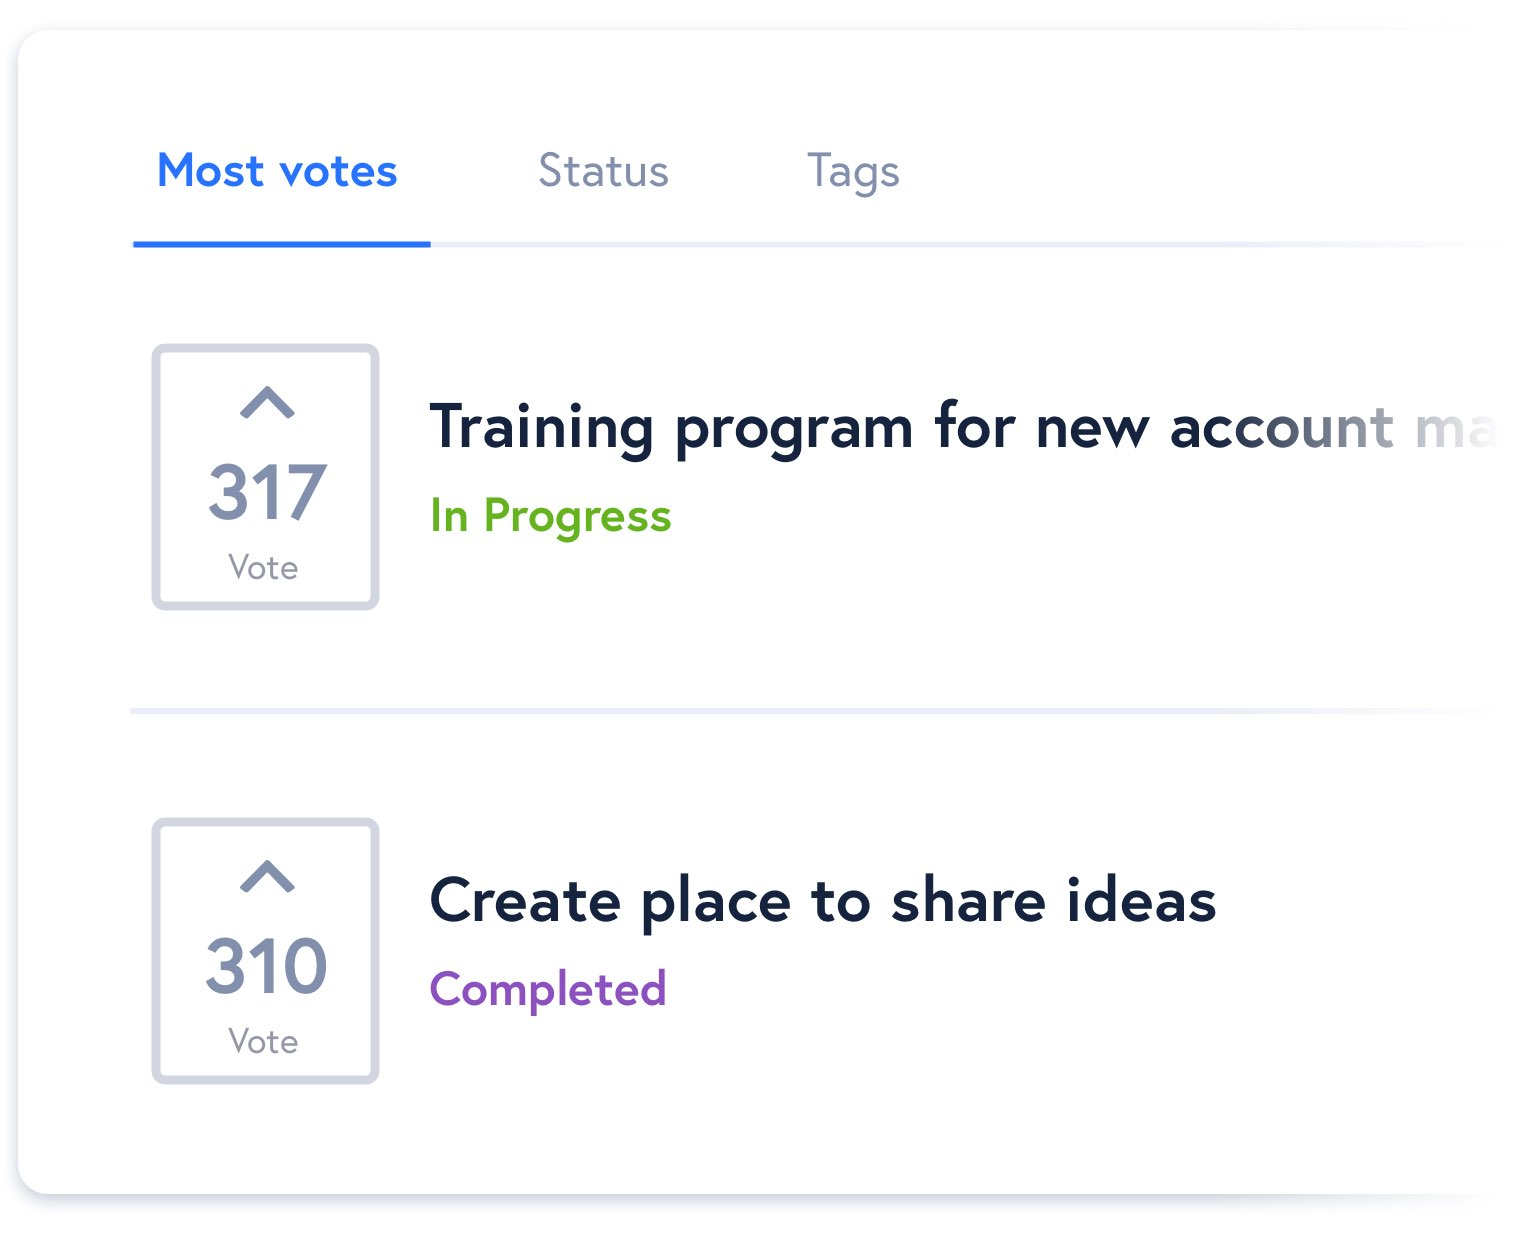 Employee ideas sorted by most votes and showing completion status